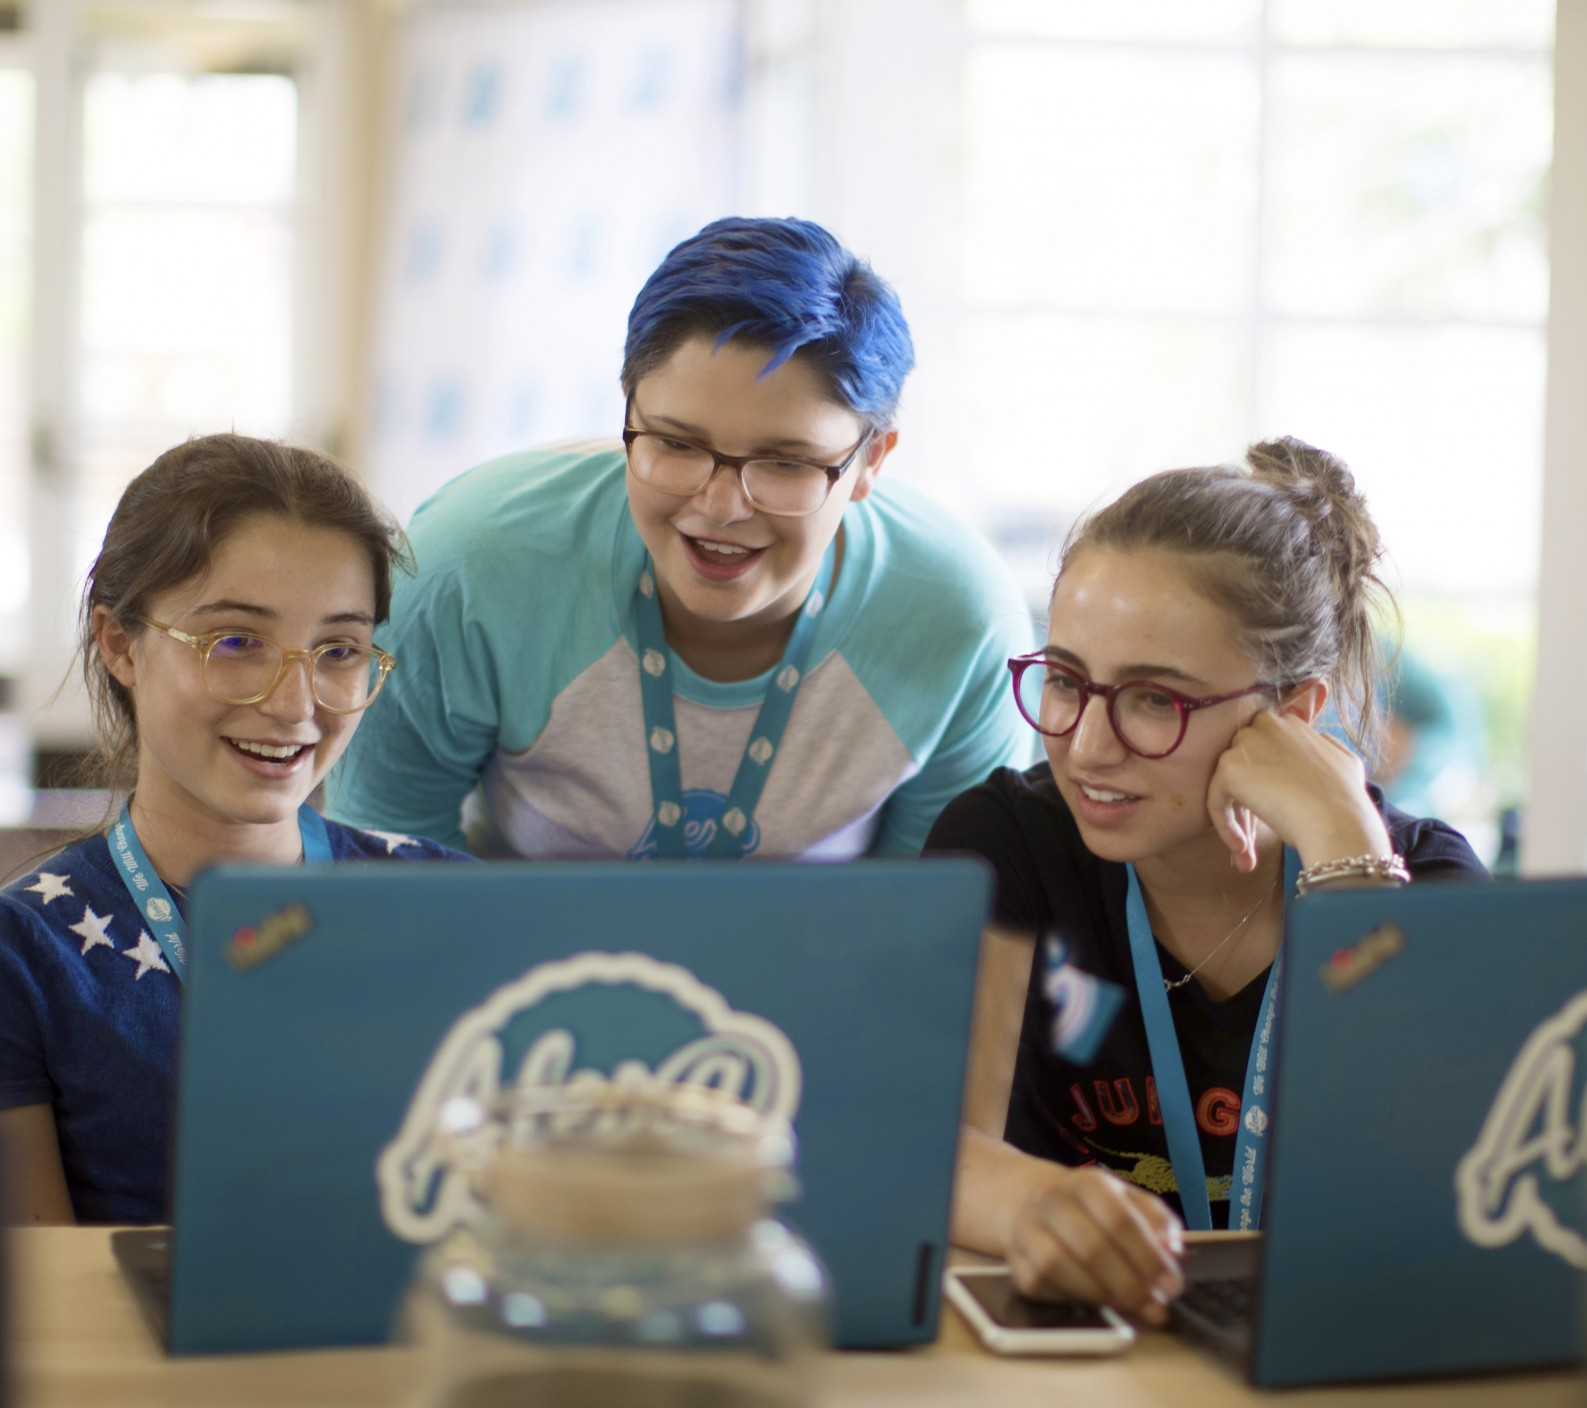 Summer Program - Engineering | Alexa Cafe: All-Girls STEM Camp | Held at Rice University